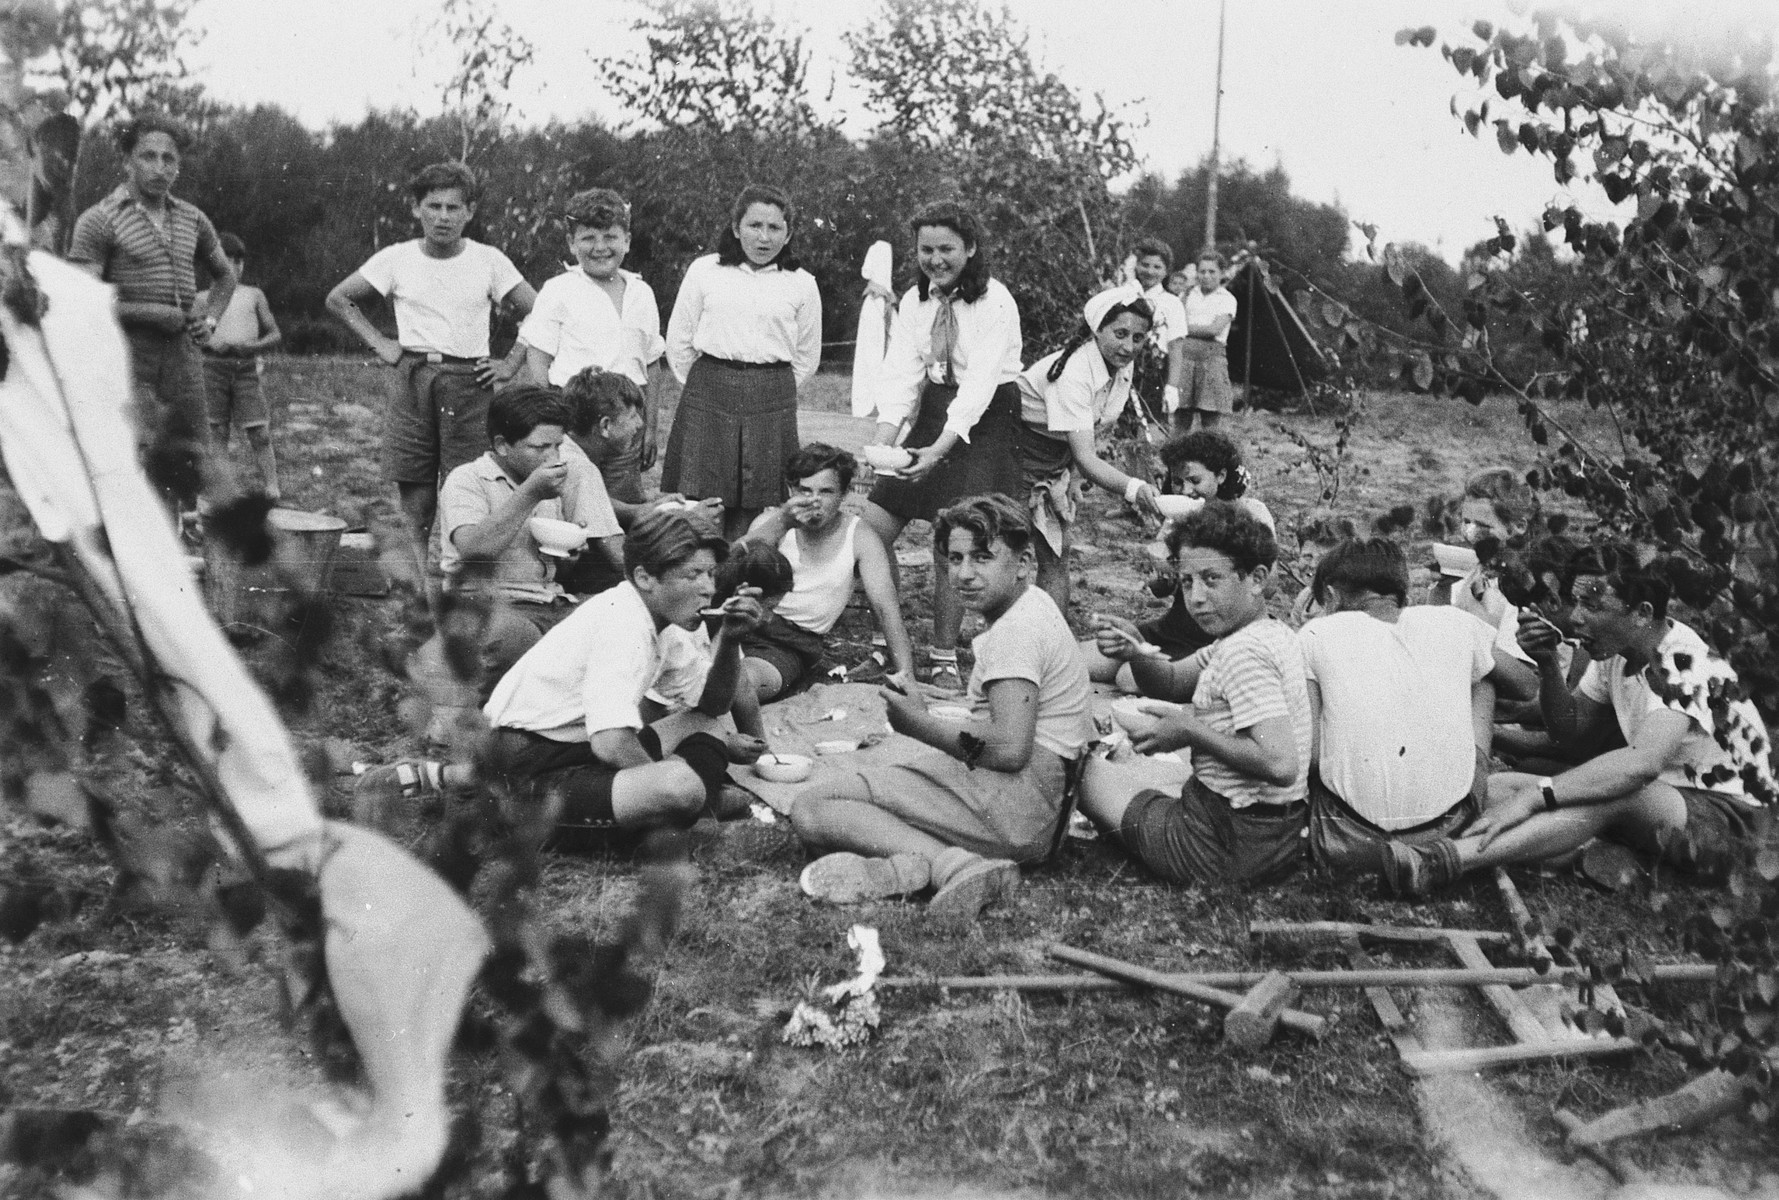 Betar Zionist youth from the Foehrenwald DP camp go on a camping trip.